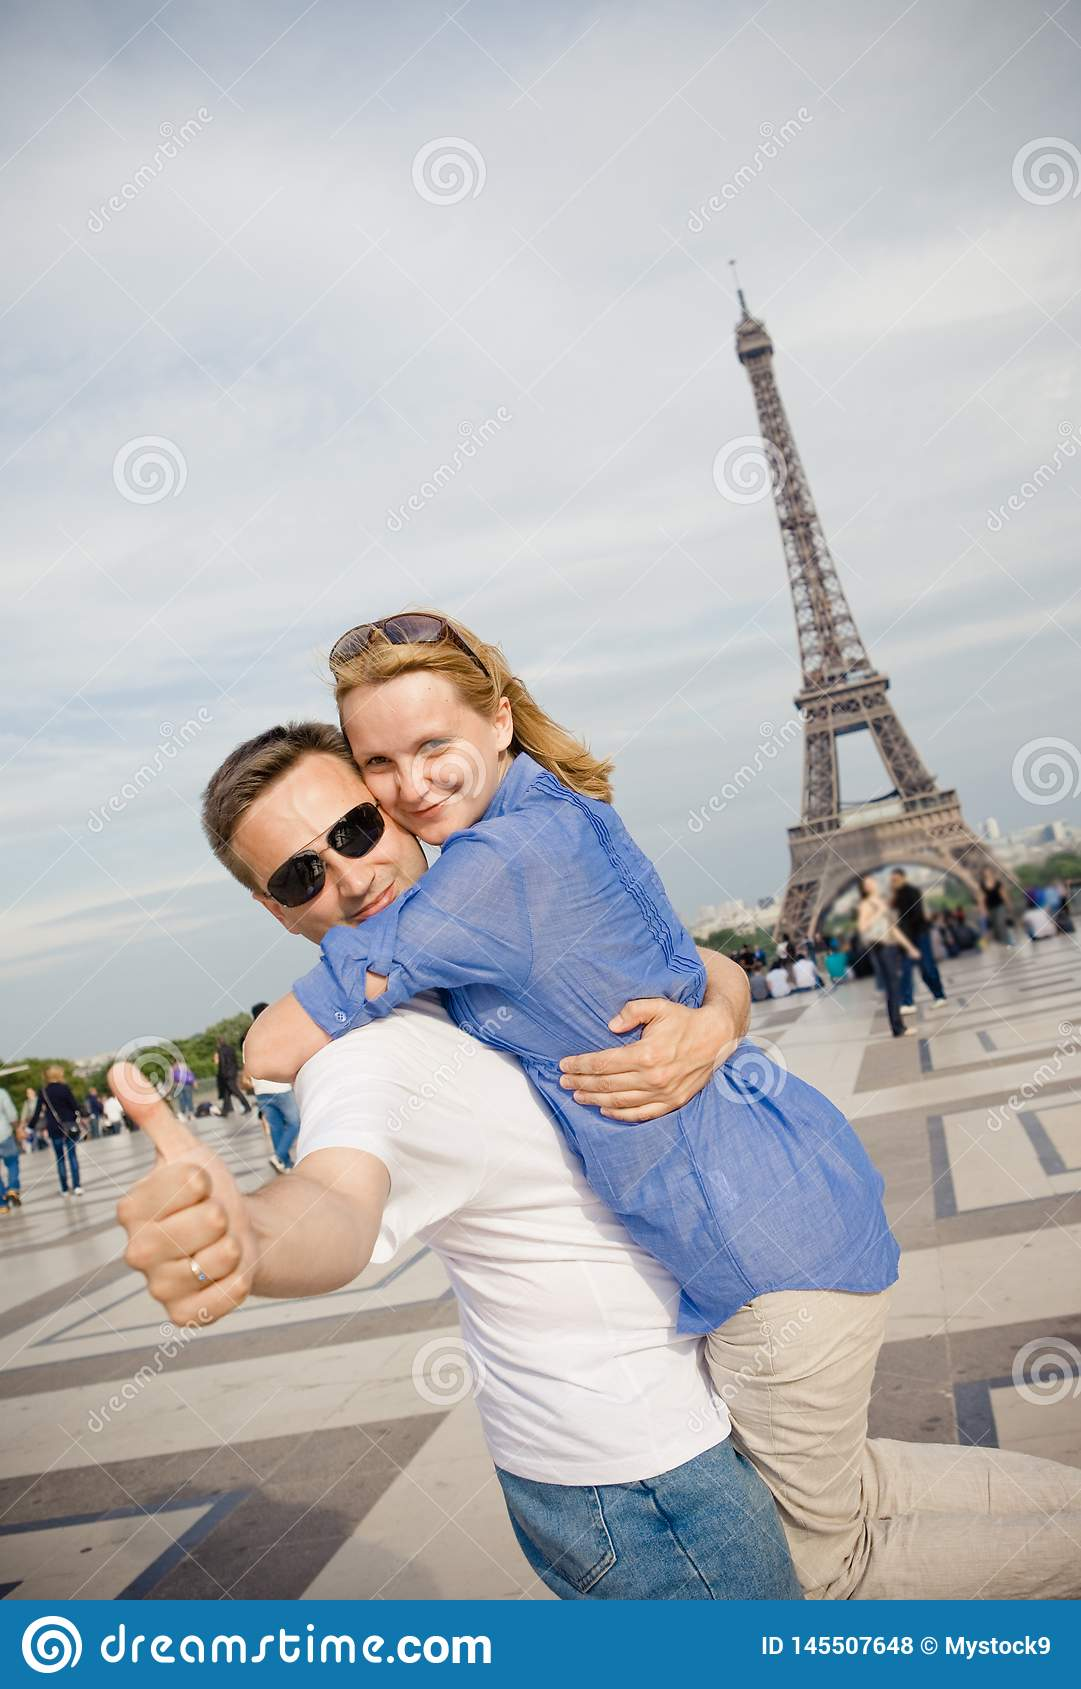 Happy young couple on the background of the Eiffel Tower in Paris. Honeymoon in Europe